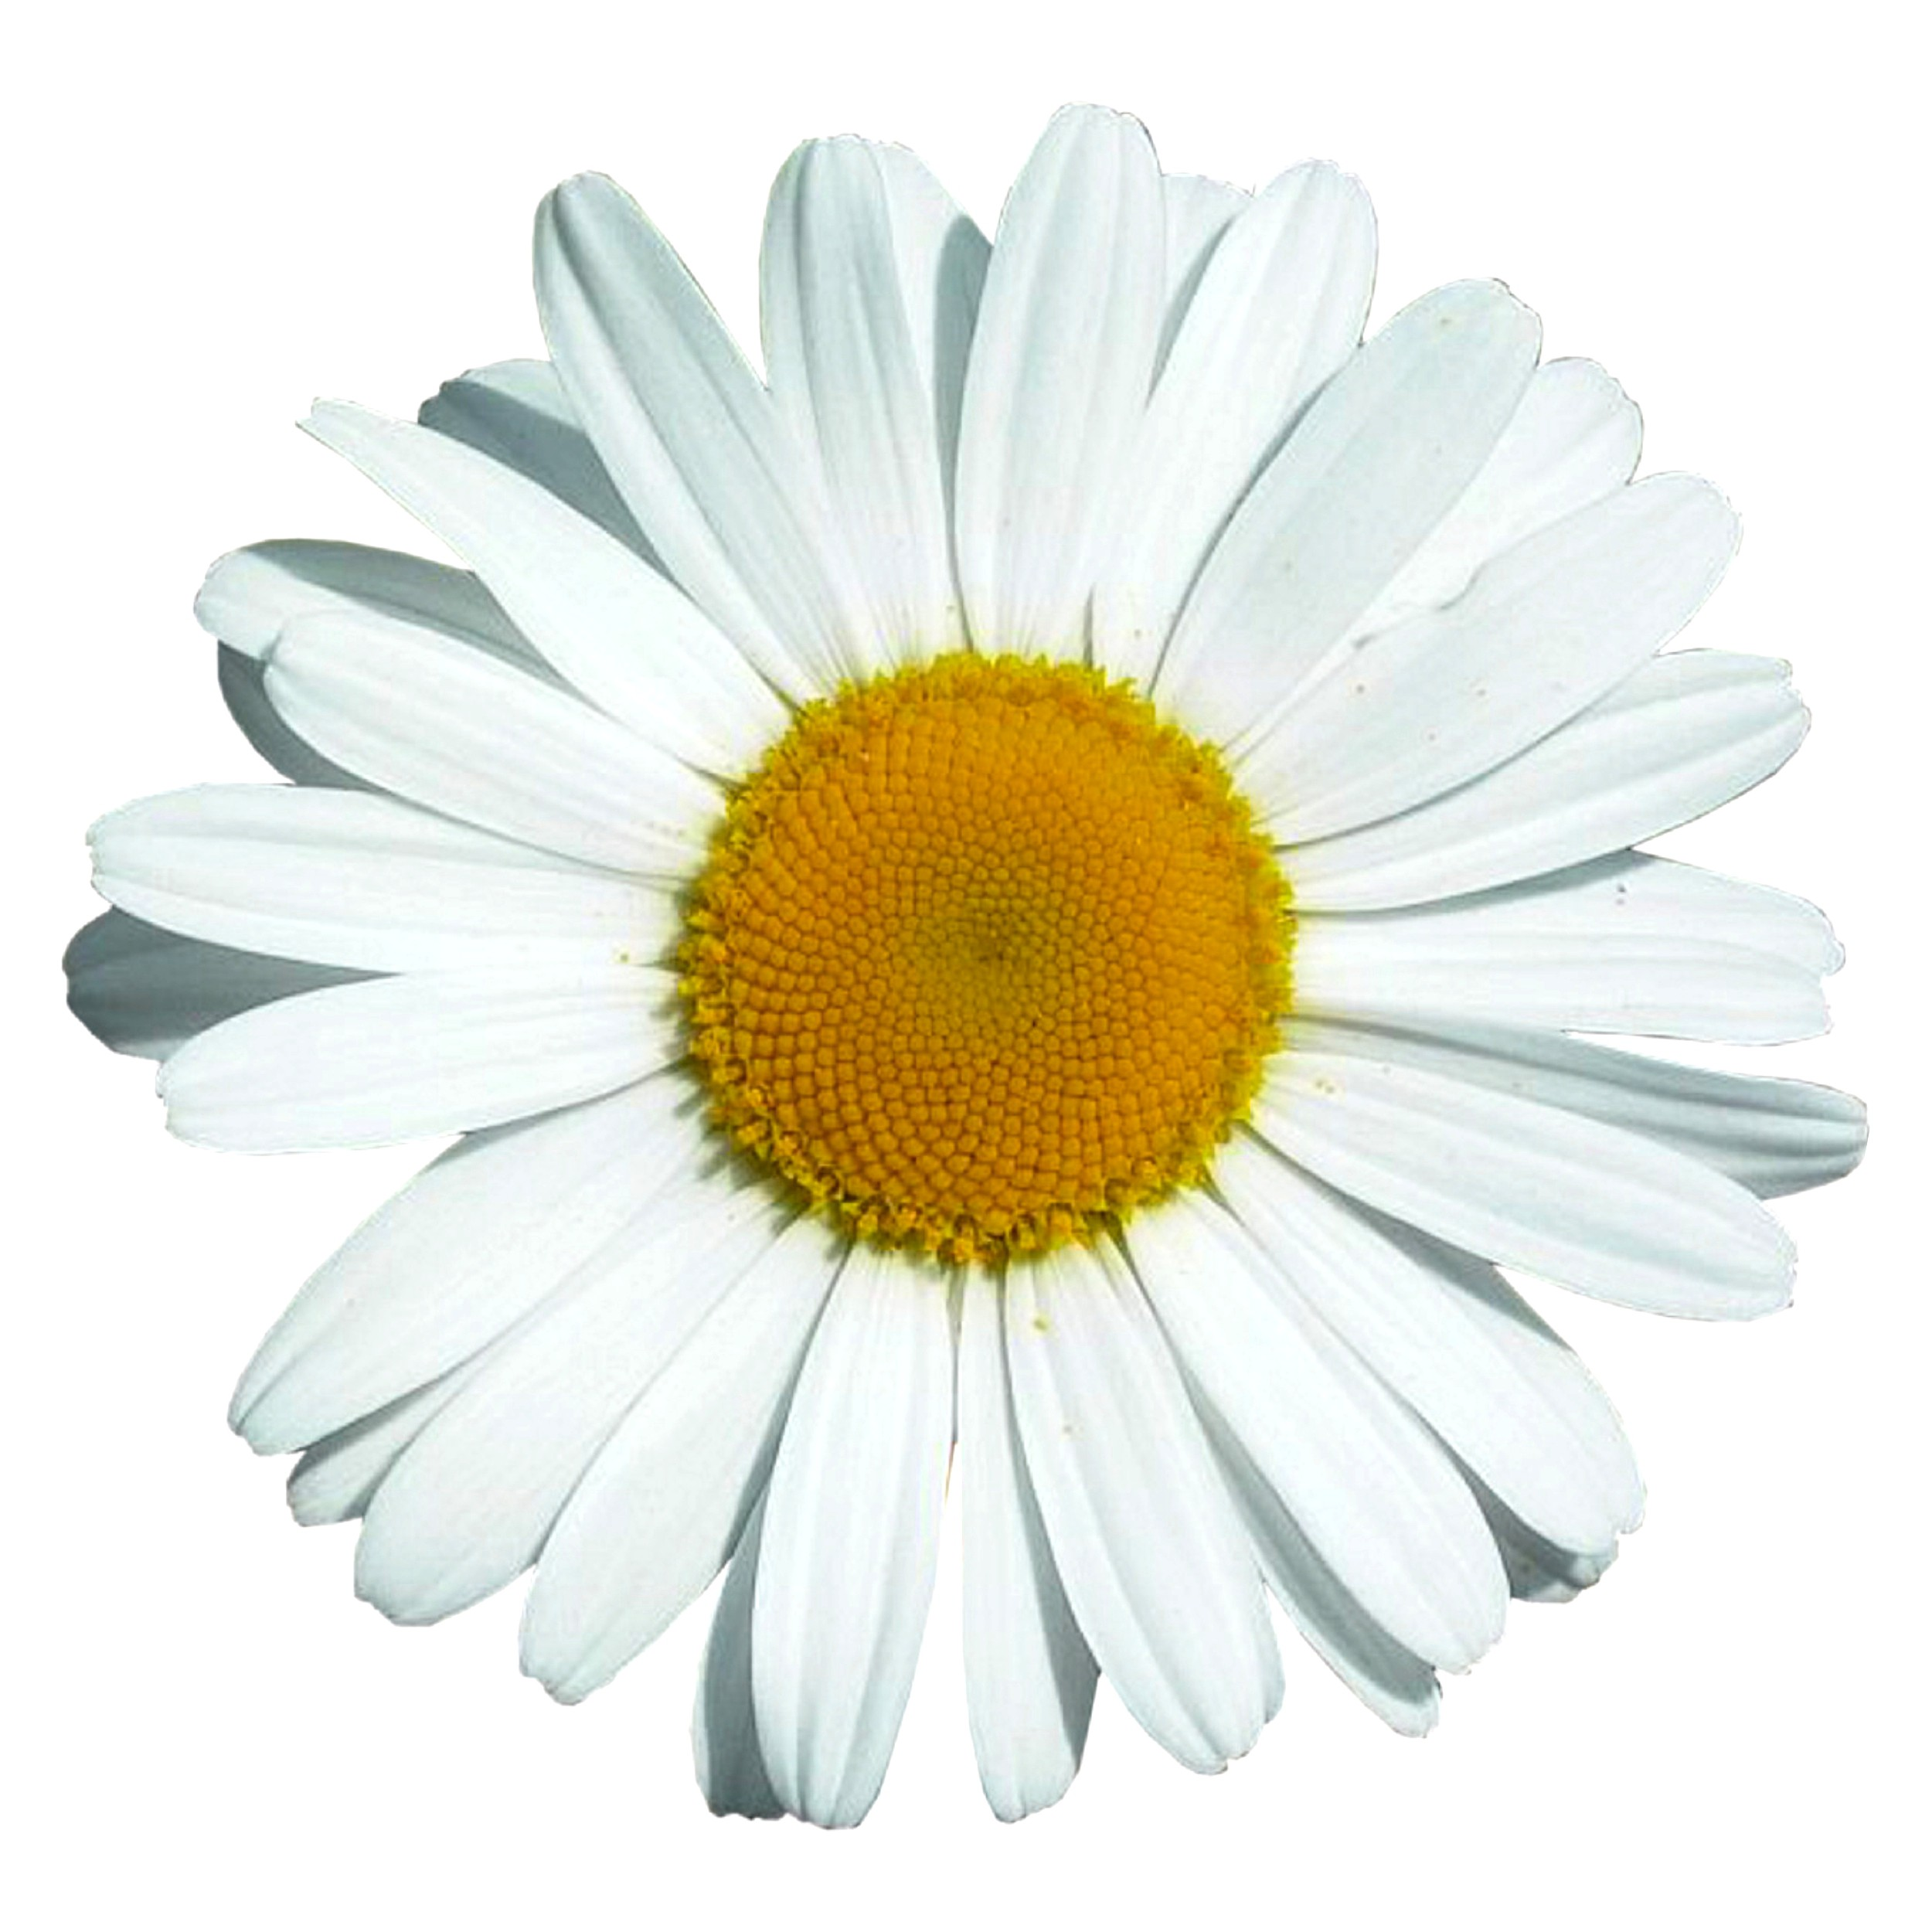 Sticker Oxeye Daisy Flower 180 x 160 mm 001